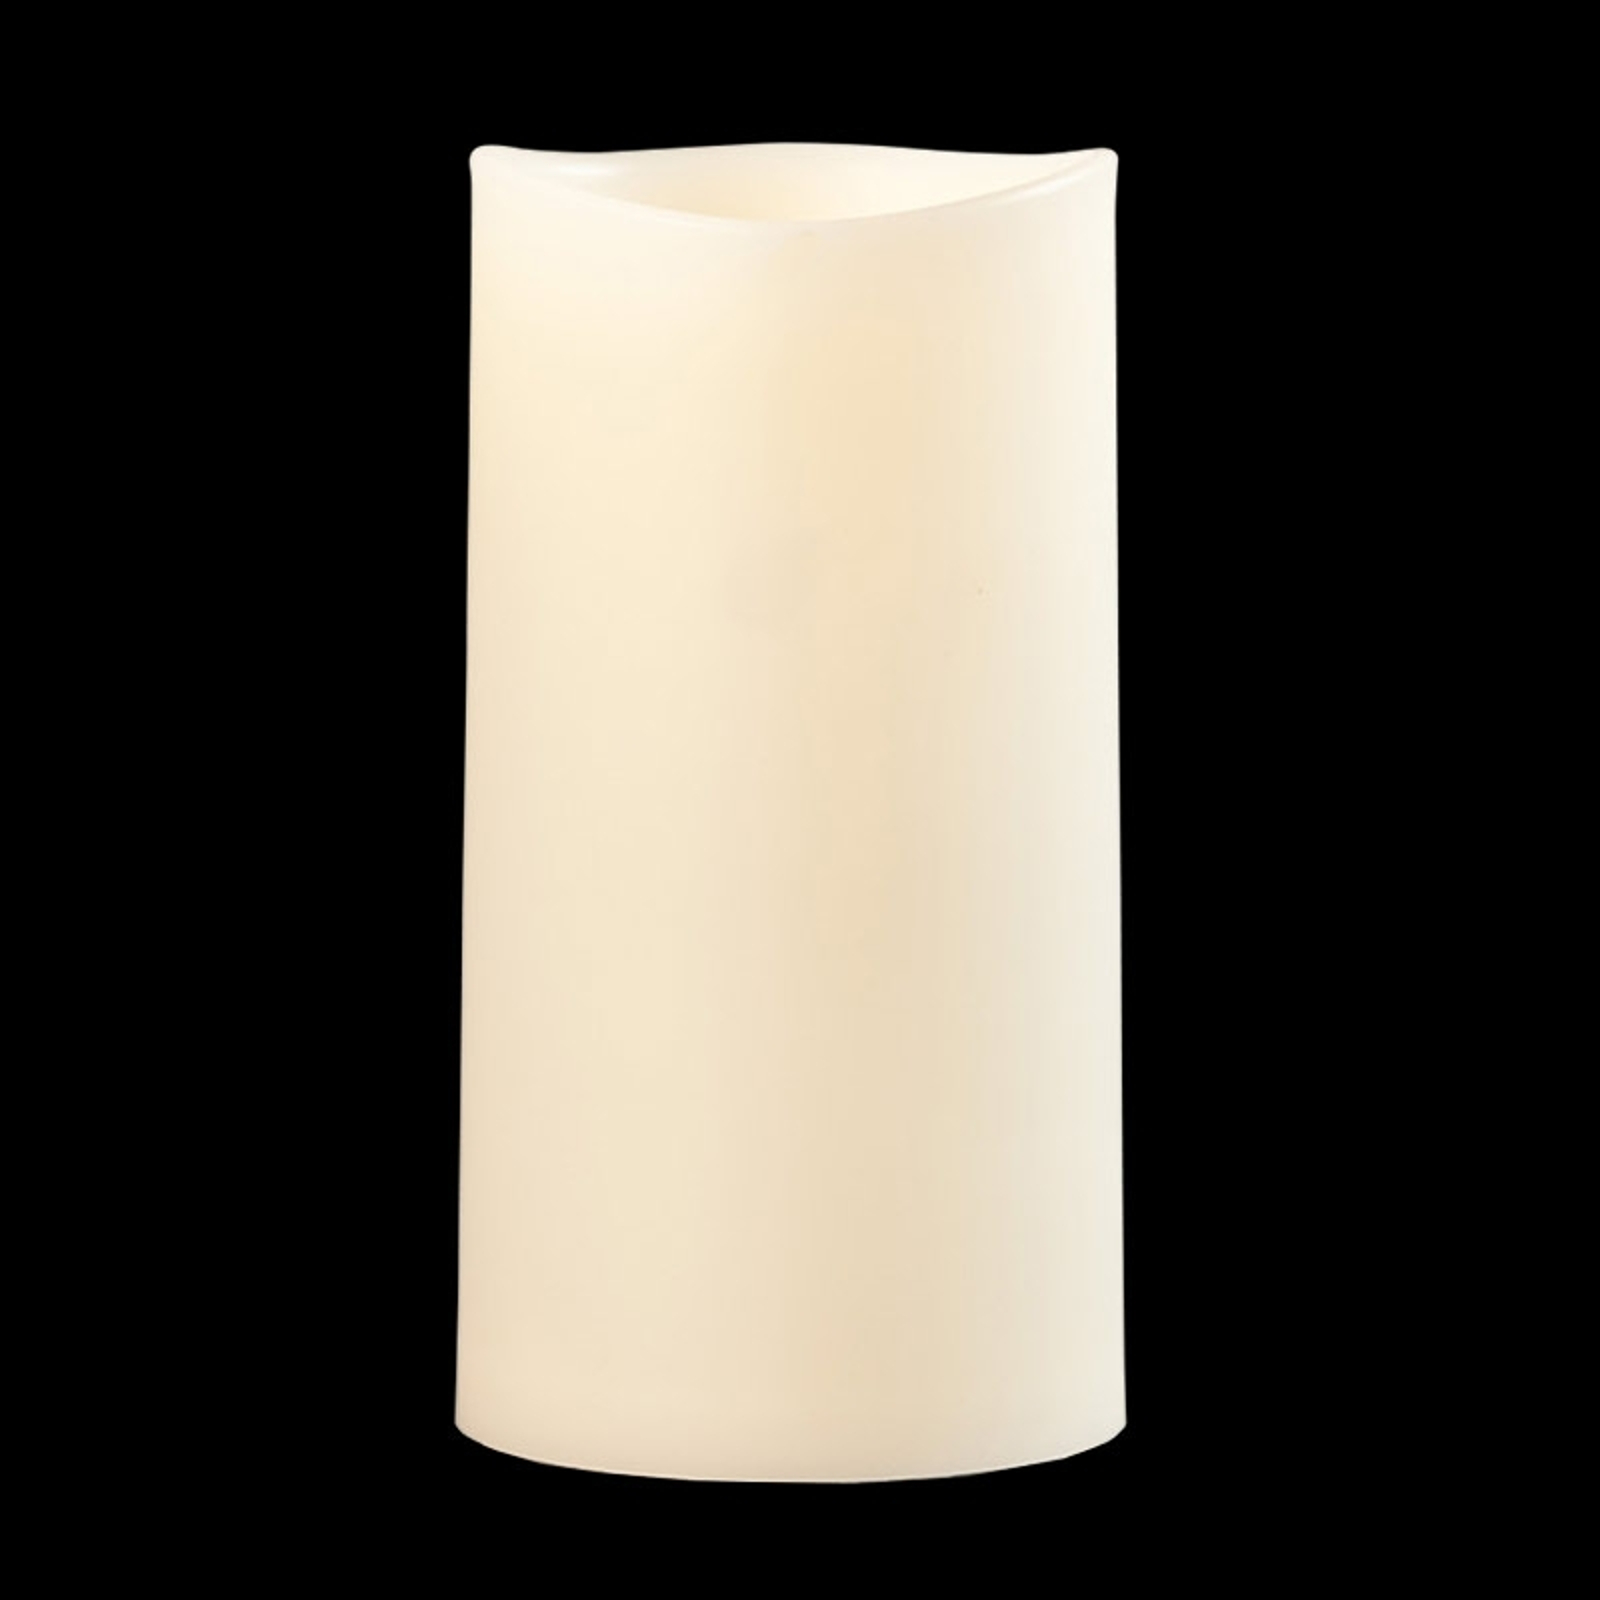 LED-dekorlys Outfdoor Candle, 17cm